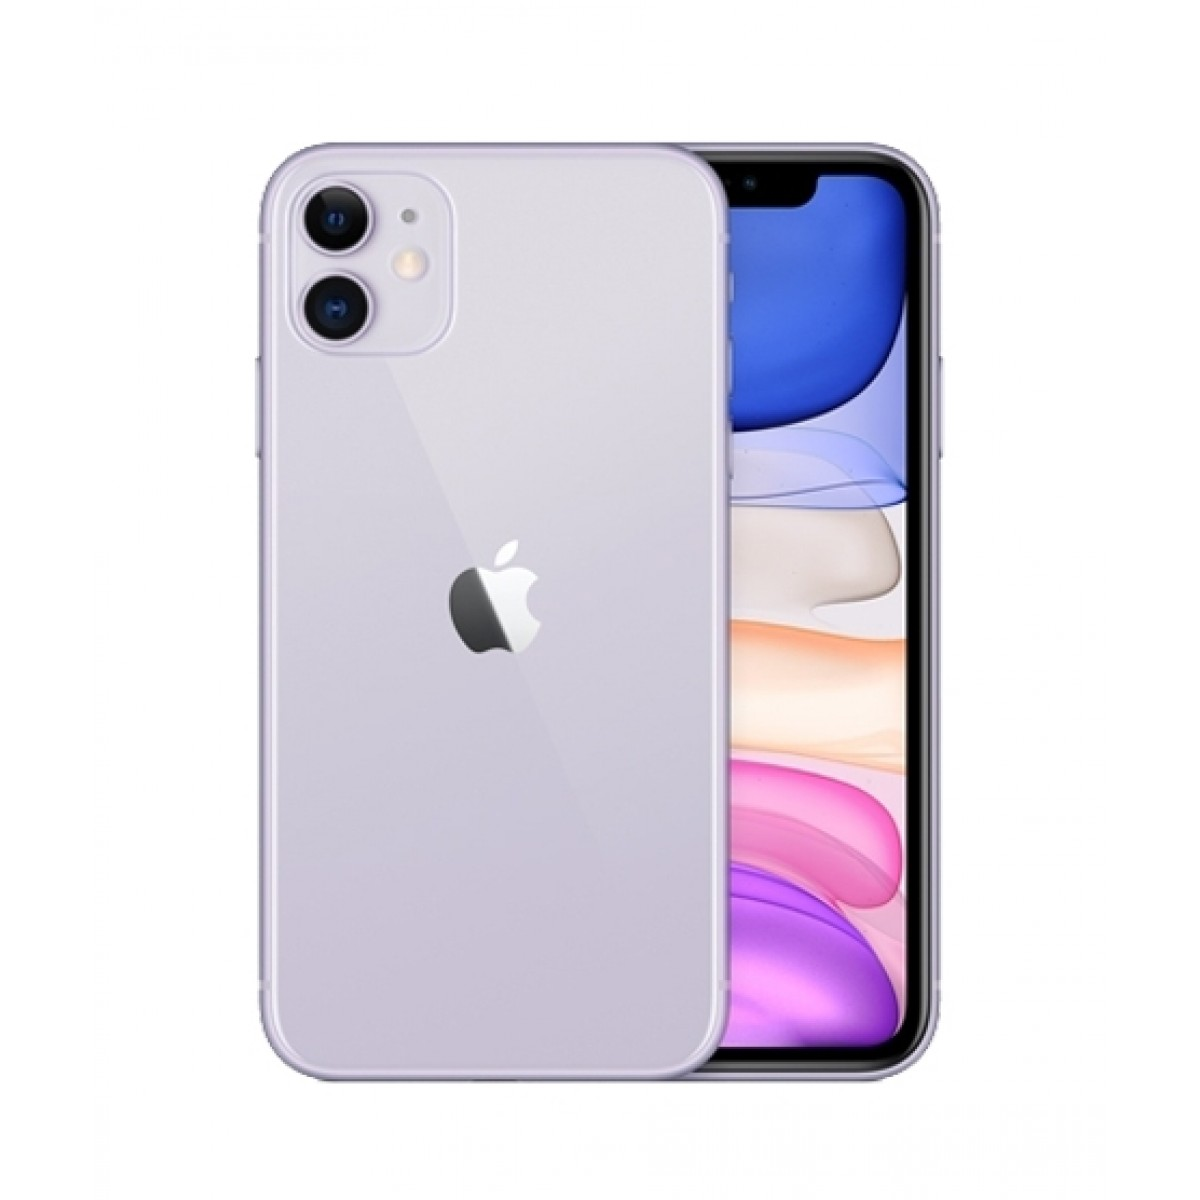 Apple iPhone 11 256GB Dual Sim Purple - Non PTA Compliant